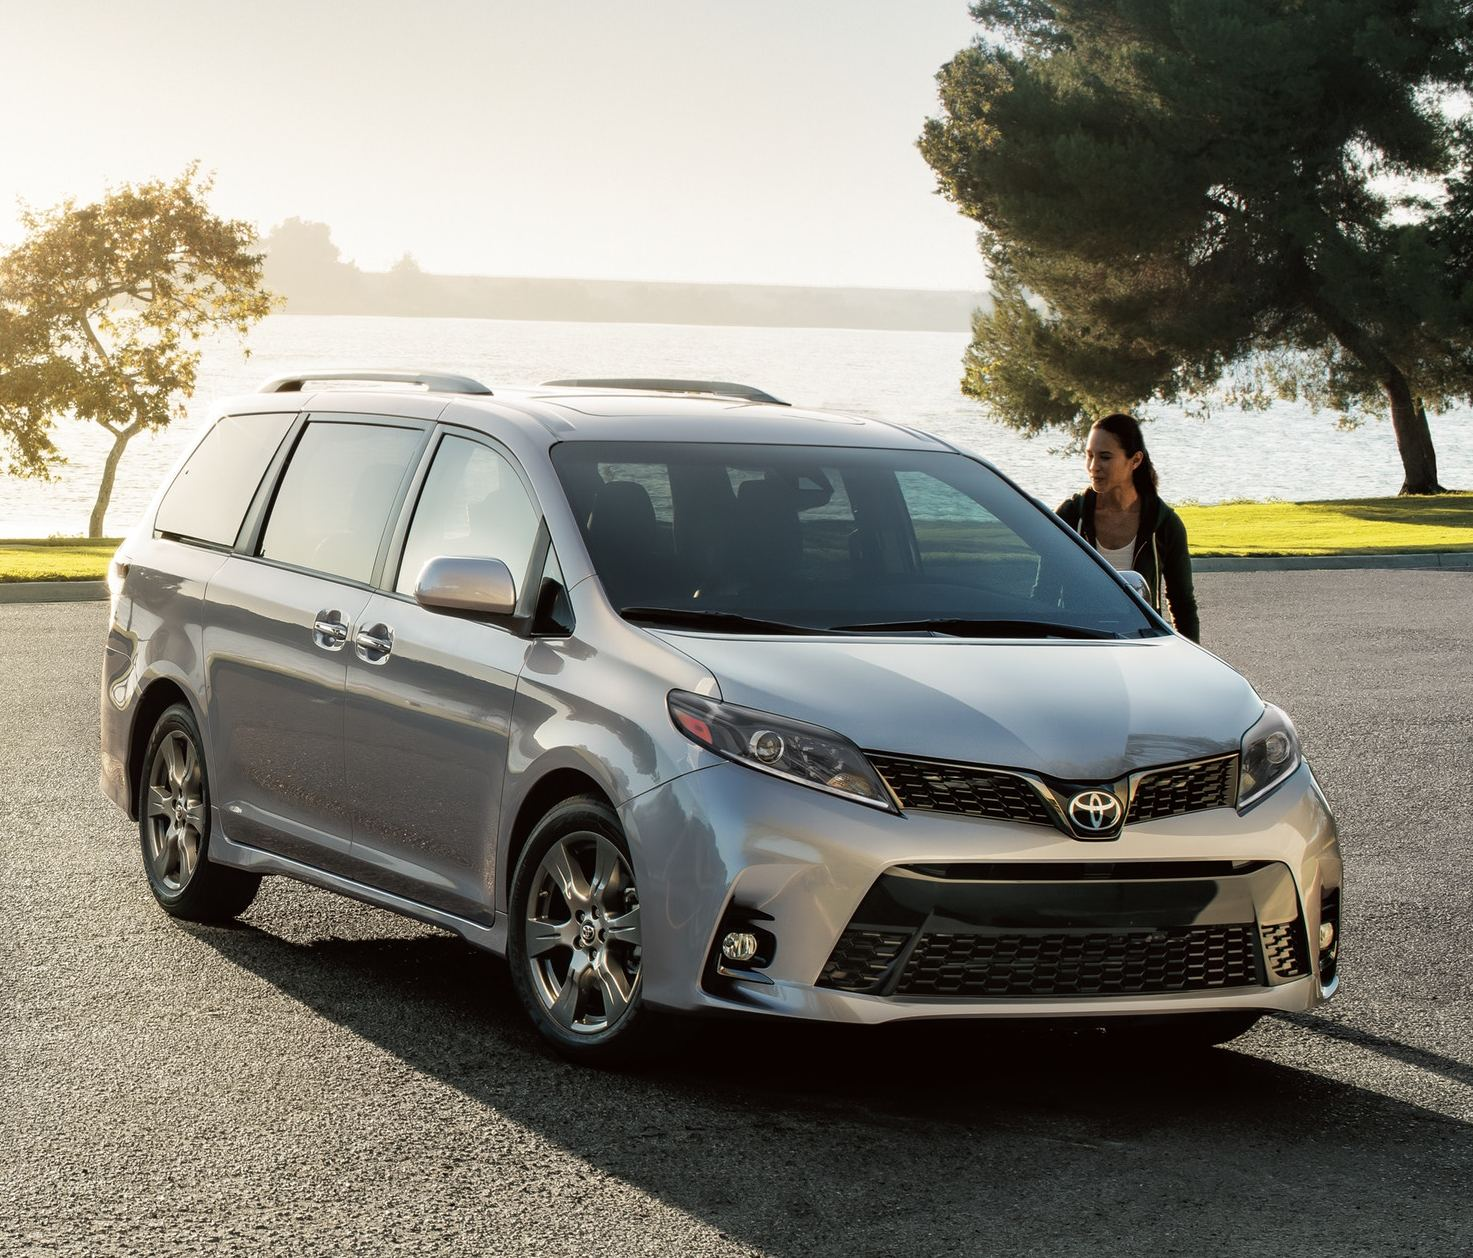 2020 Toyota Sienna Leasing near Paramus, NJ